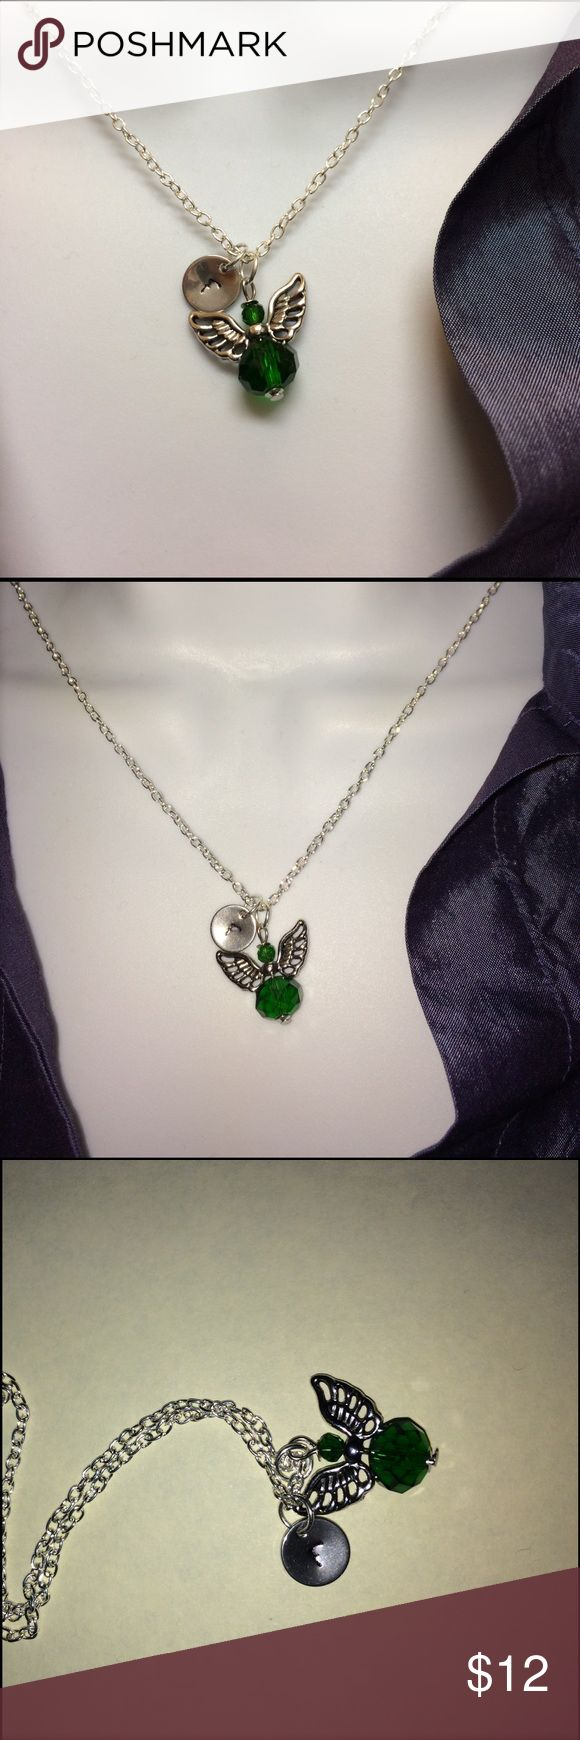 """May birthstone angel choose initial necklace. Personalized May green birthstone angel choose your initial letter necklace, will hand stamp the initial for your per order.  Necklace length: 19"""". -------#b4371 Jewelry Necklaces"""